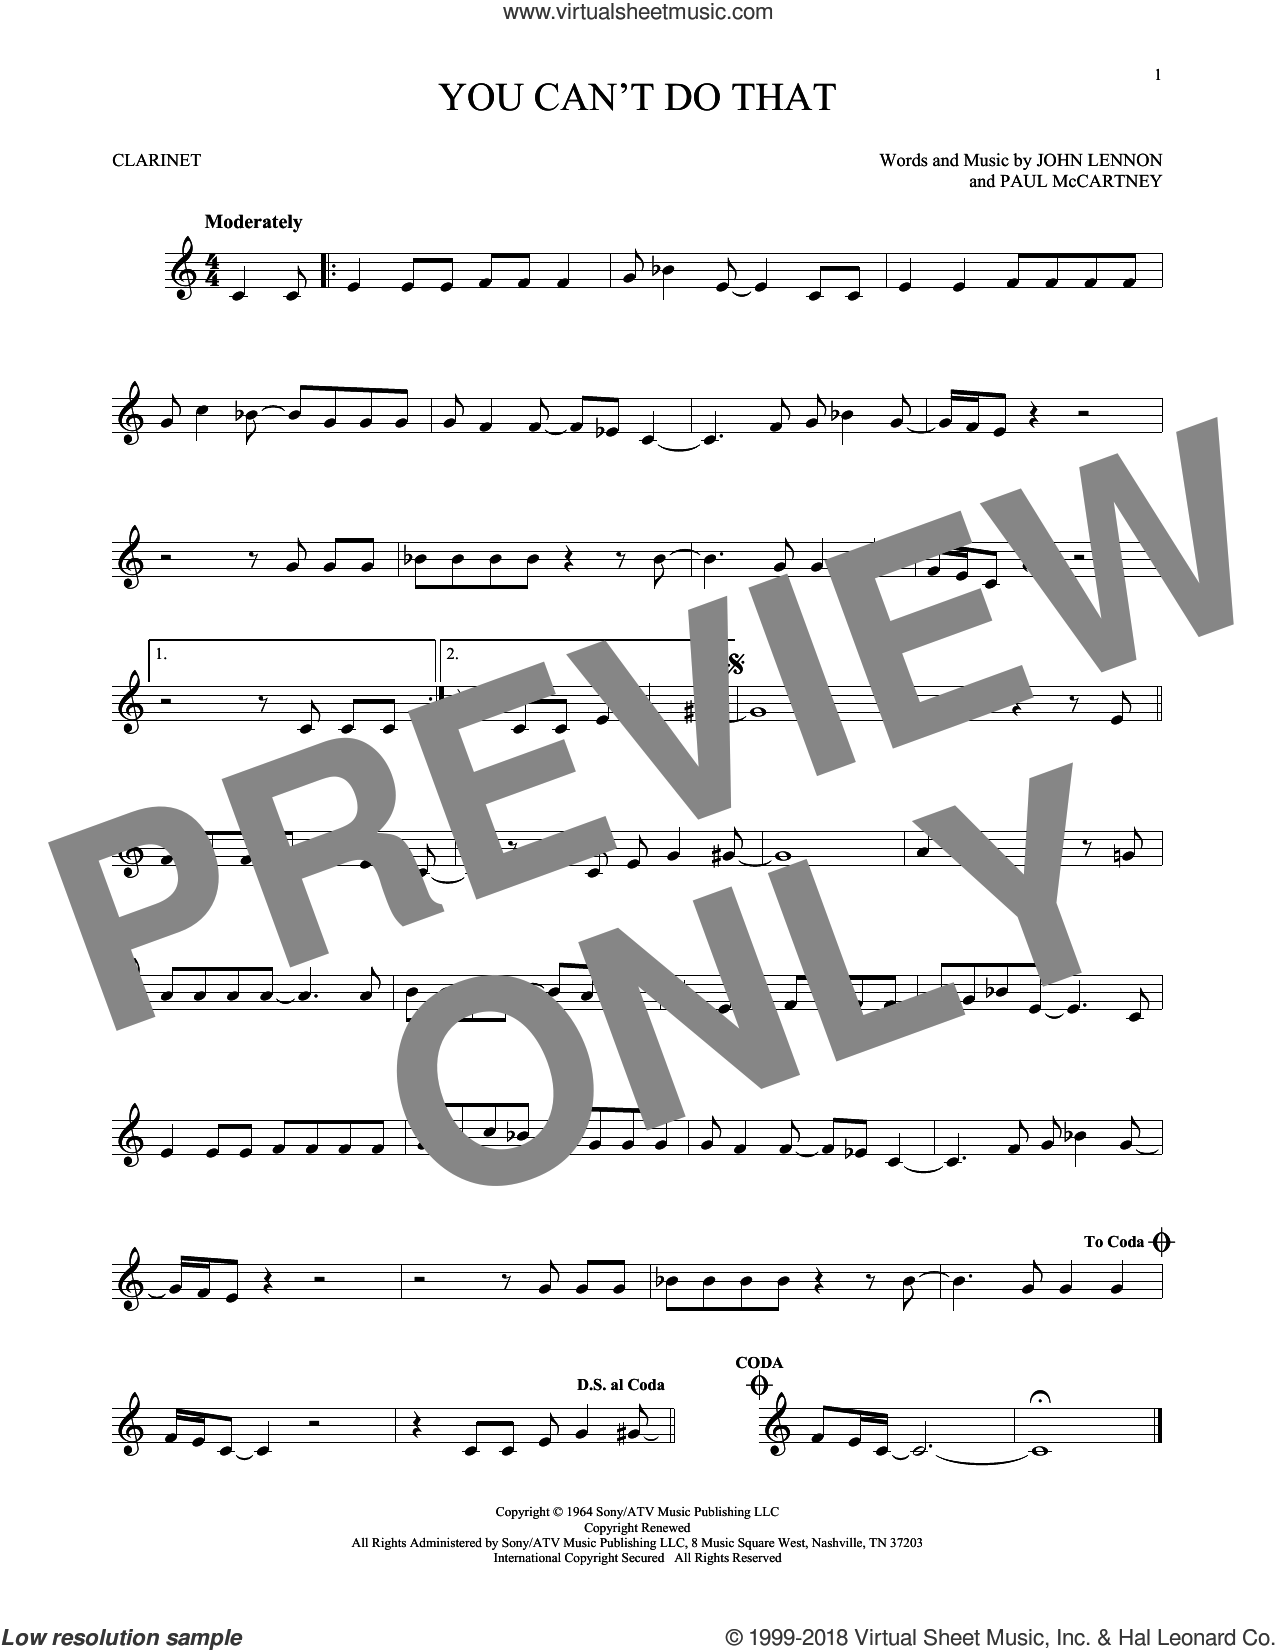 You Can't Do That sheet music for clarinet solo by Paul McCartney, The Beatles and John Lennon. Score Image Preview.